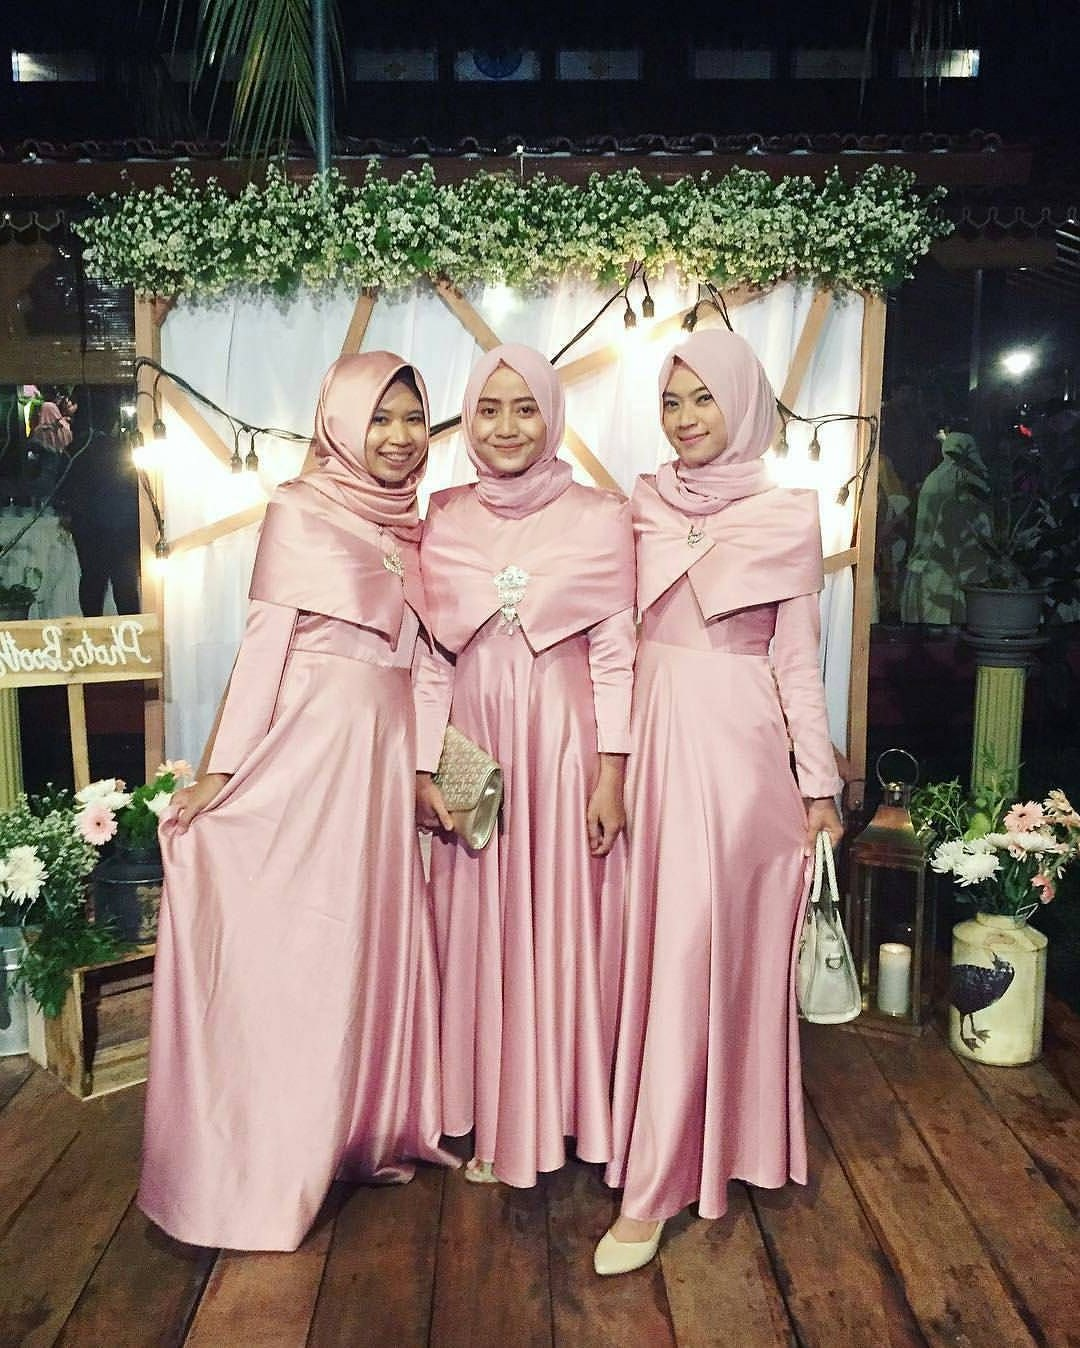 Ide Hijab Bridesmaid U3dh Pin by Sri Widati Resiningrum soecipto soeryopoetro On Baju2